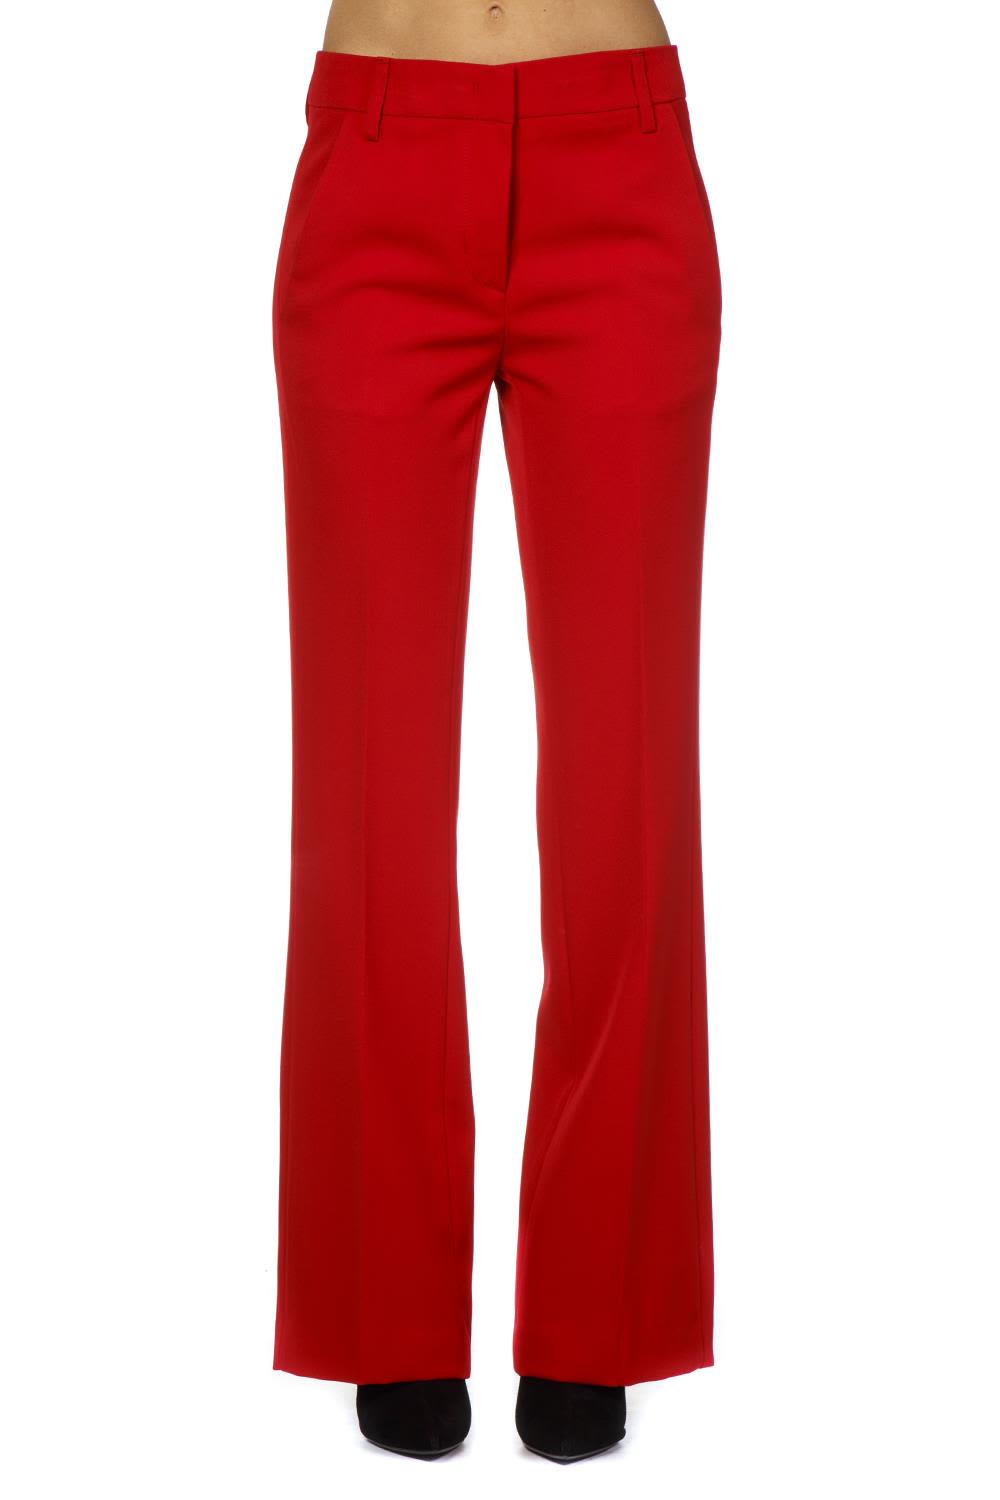 Dondup Red Crepe Flared Trousers